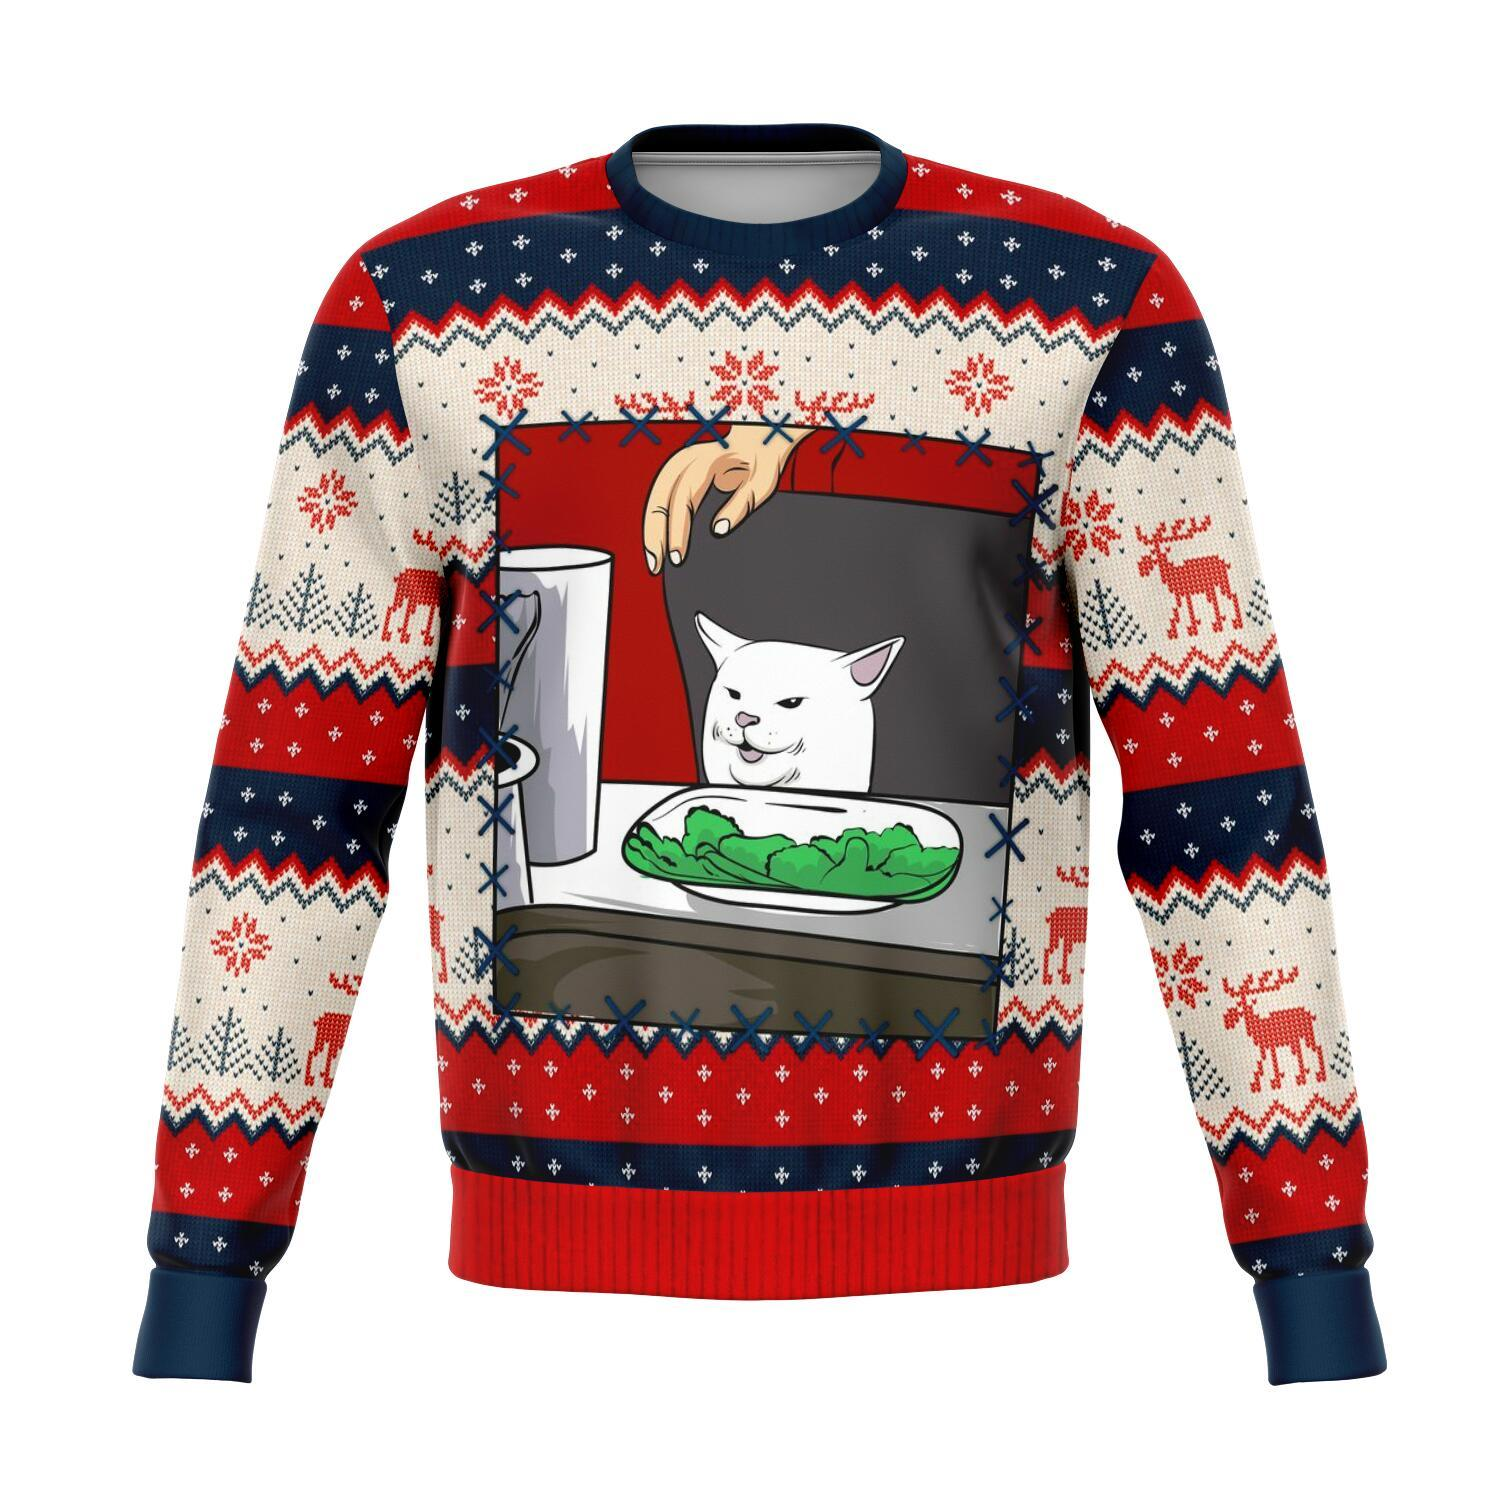 Woman Yelling At A Cat Meme King #2 All-Over Printed Sweaters 1